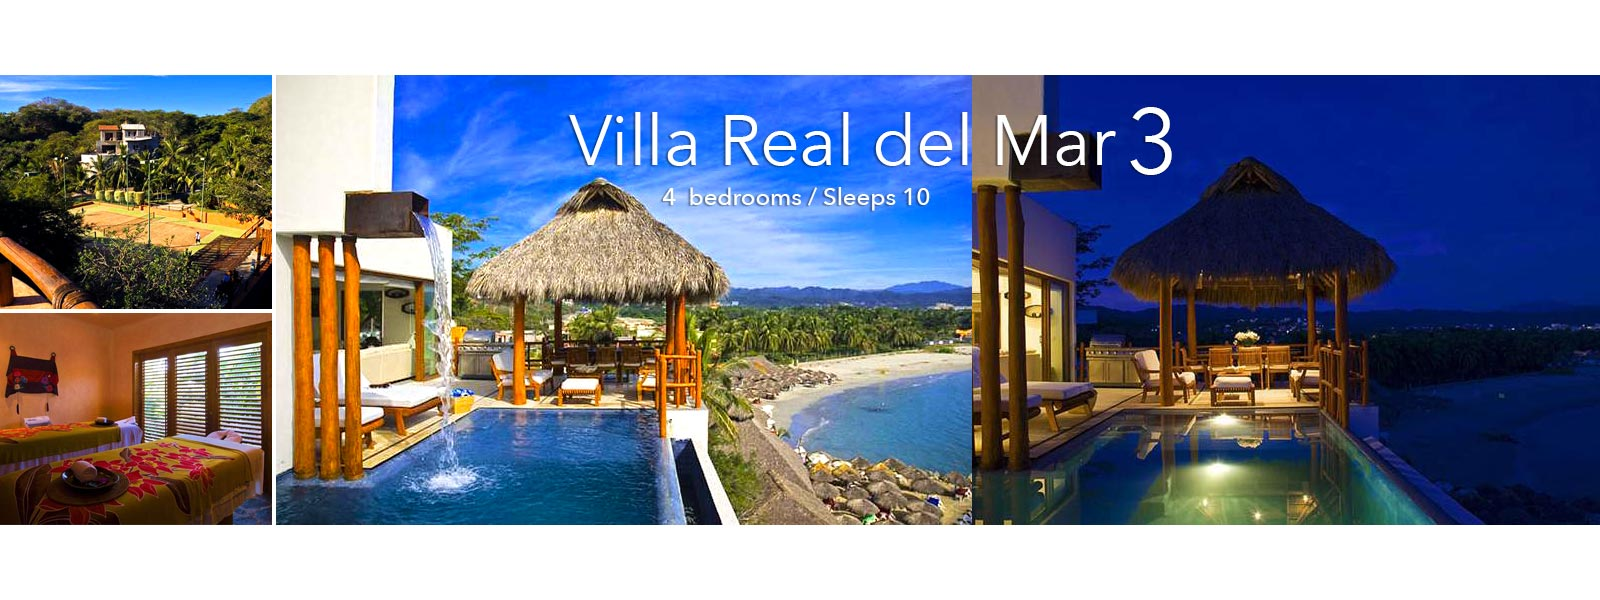 Villa Real del Mar 3 - Luxury Punta de Mita Vacation Rental Villa for Sale